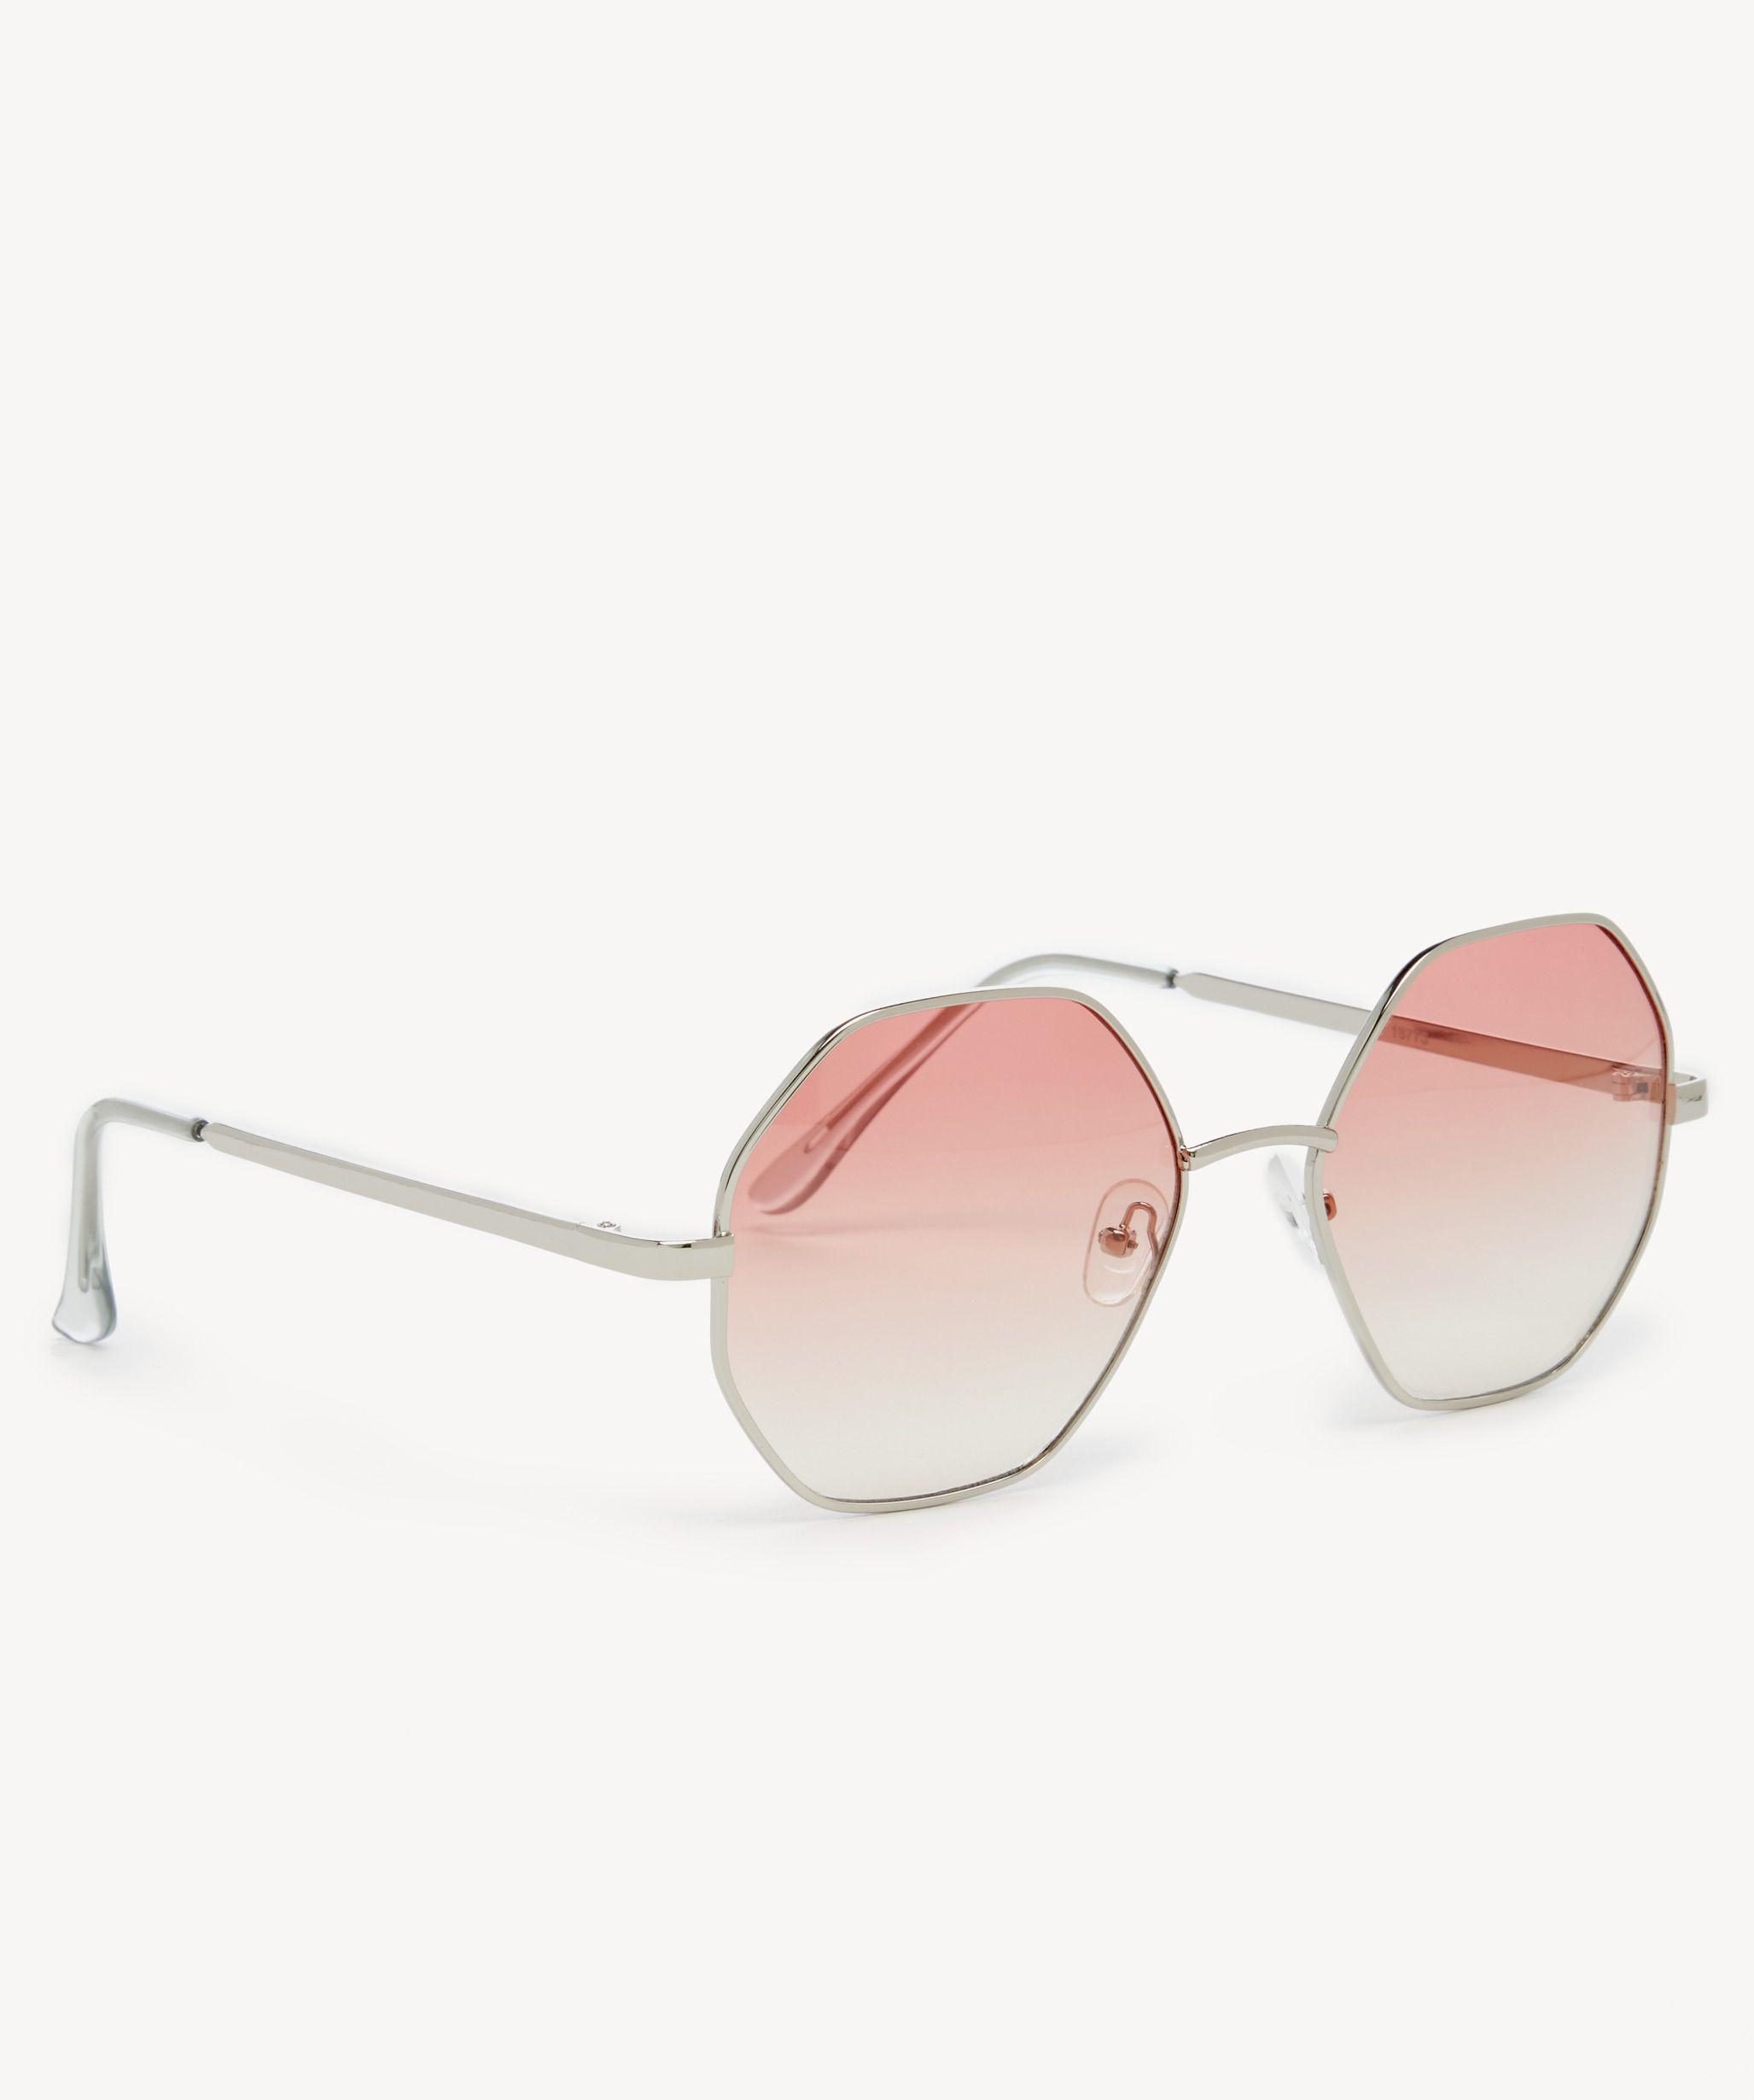 5ca8ab4117f Lyst - Sole Society Reeso Oversize Round Clear Lens Sunglasses